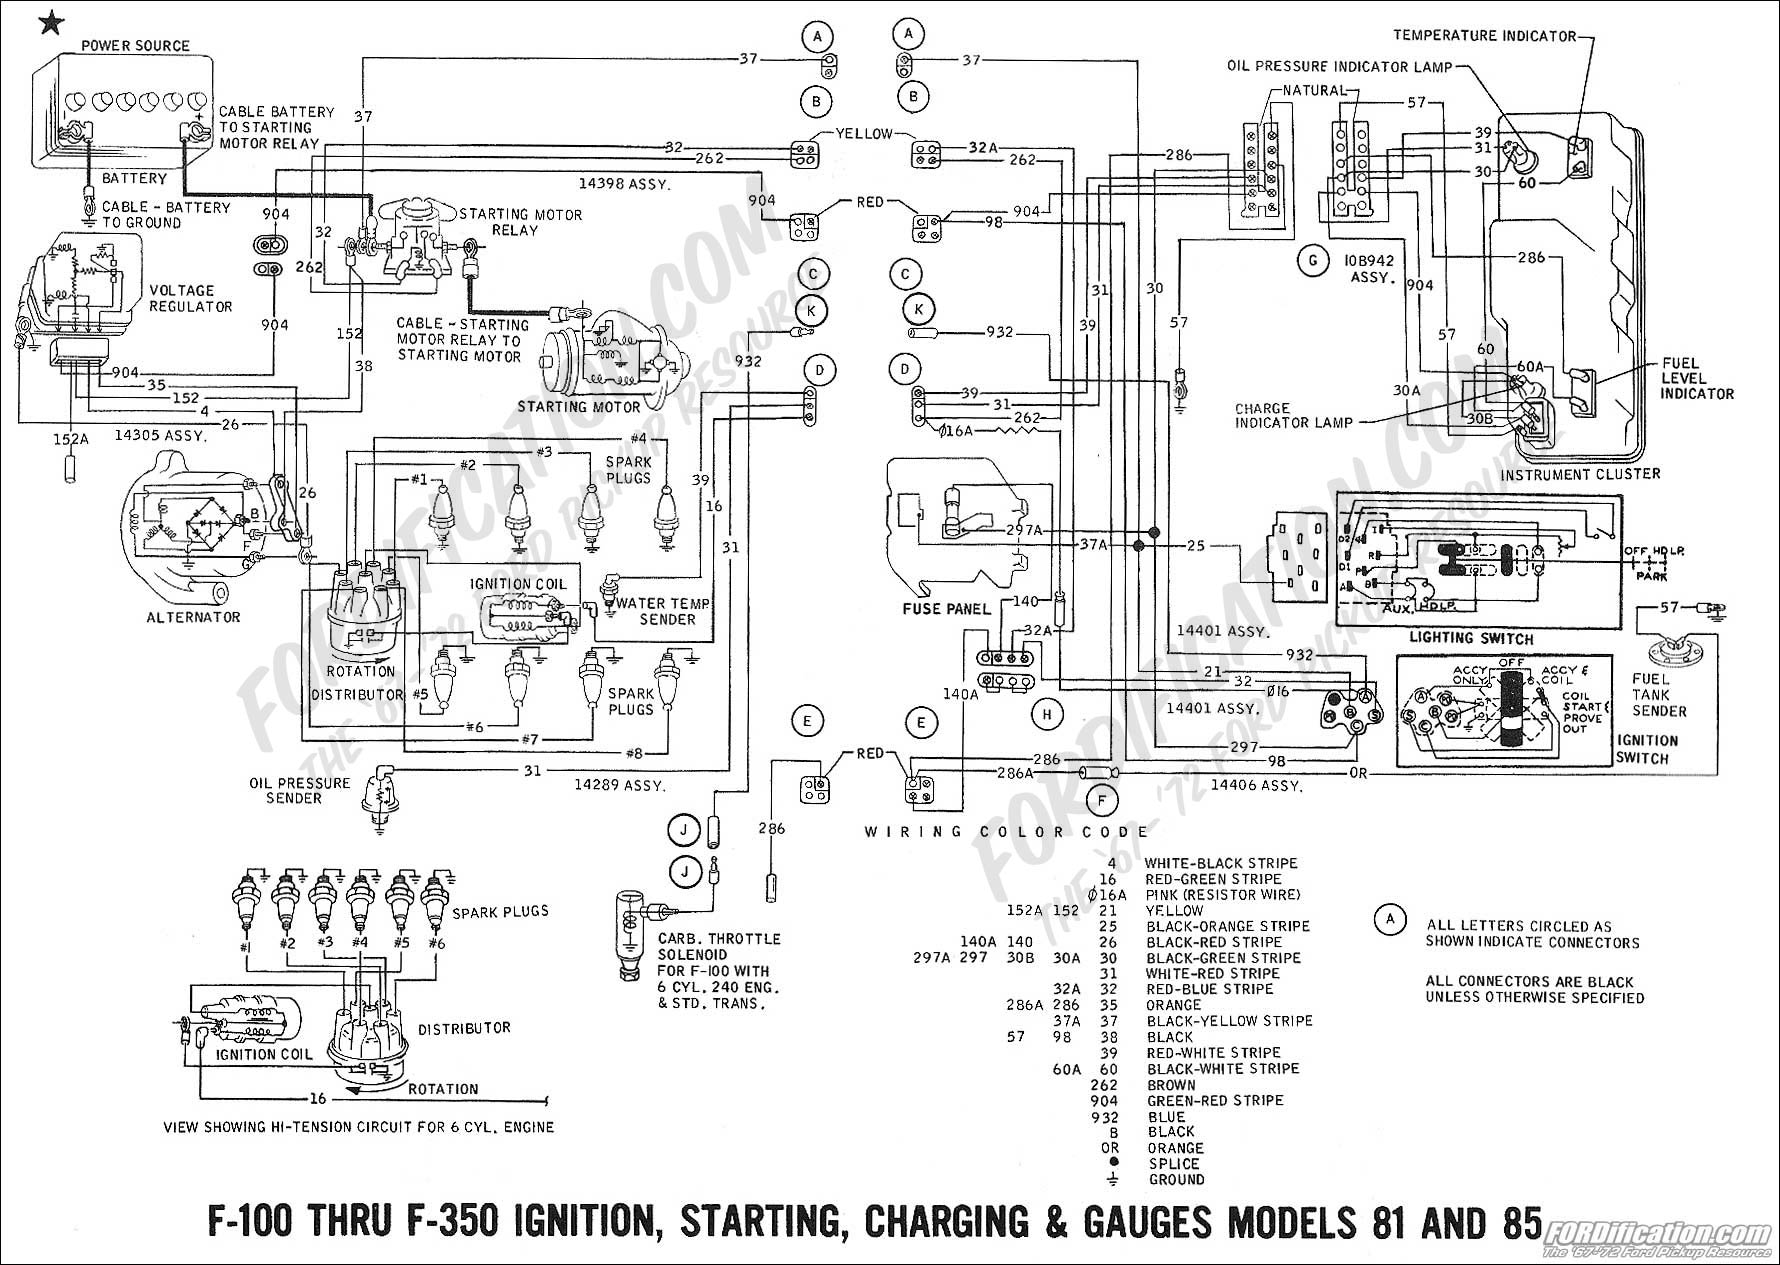 ford electrical diagrams detailed schematics diagram rh lelandlutheran com  2006 Ford F-250 Wiring Diagram 1992 Ford F-250 Diesel